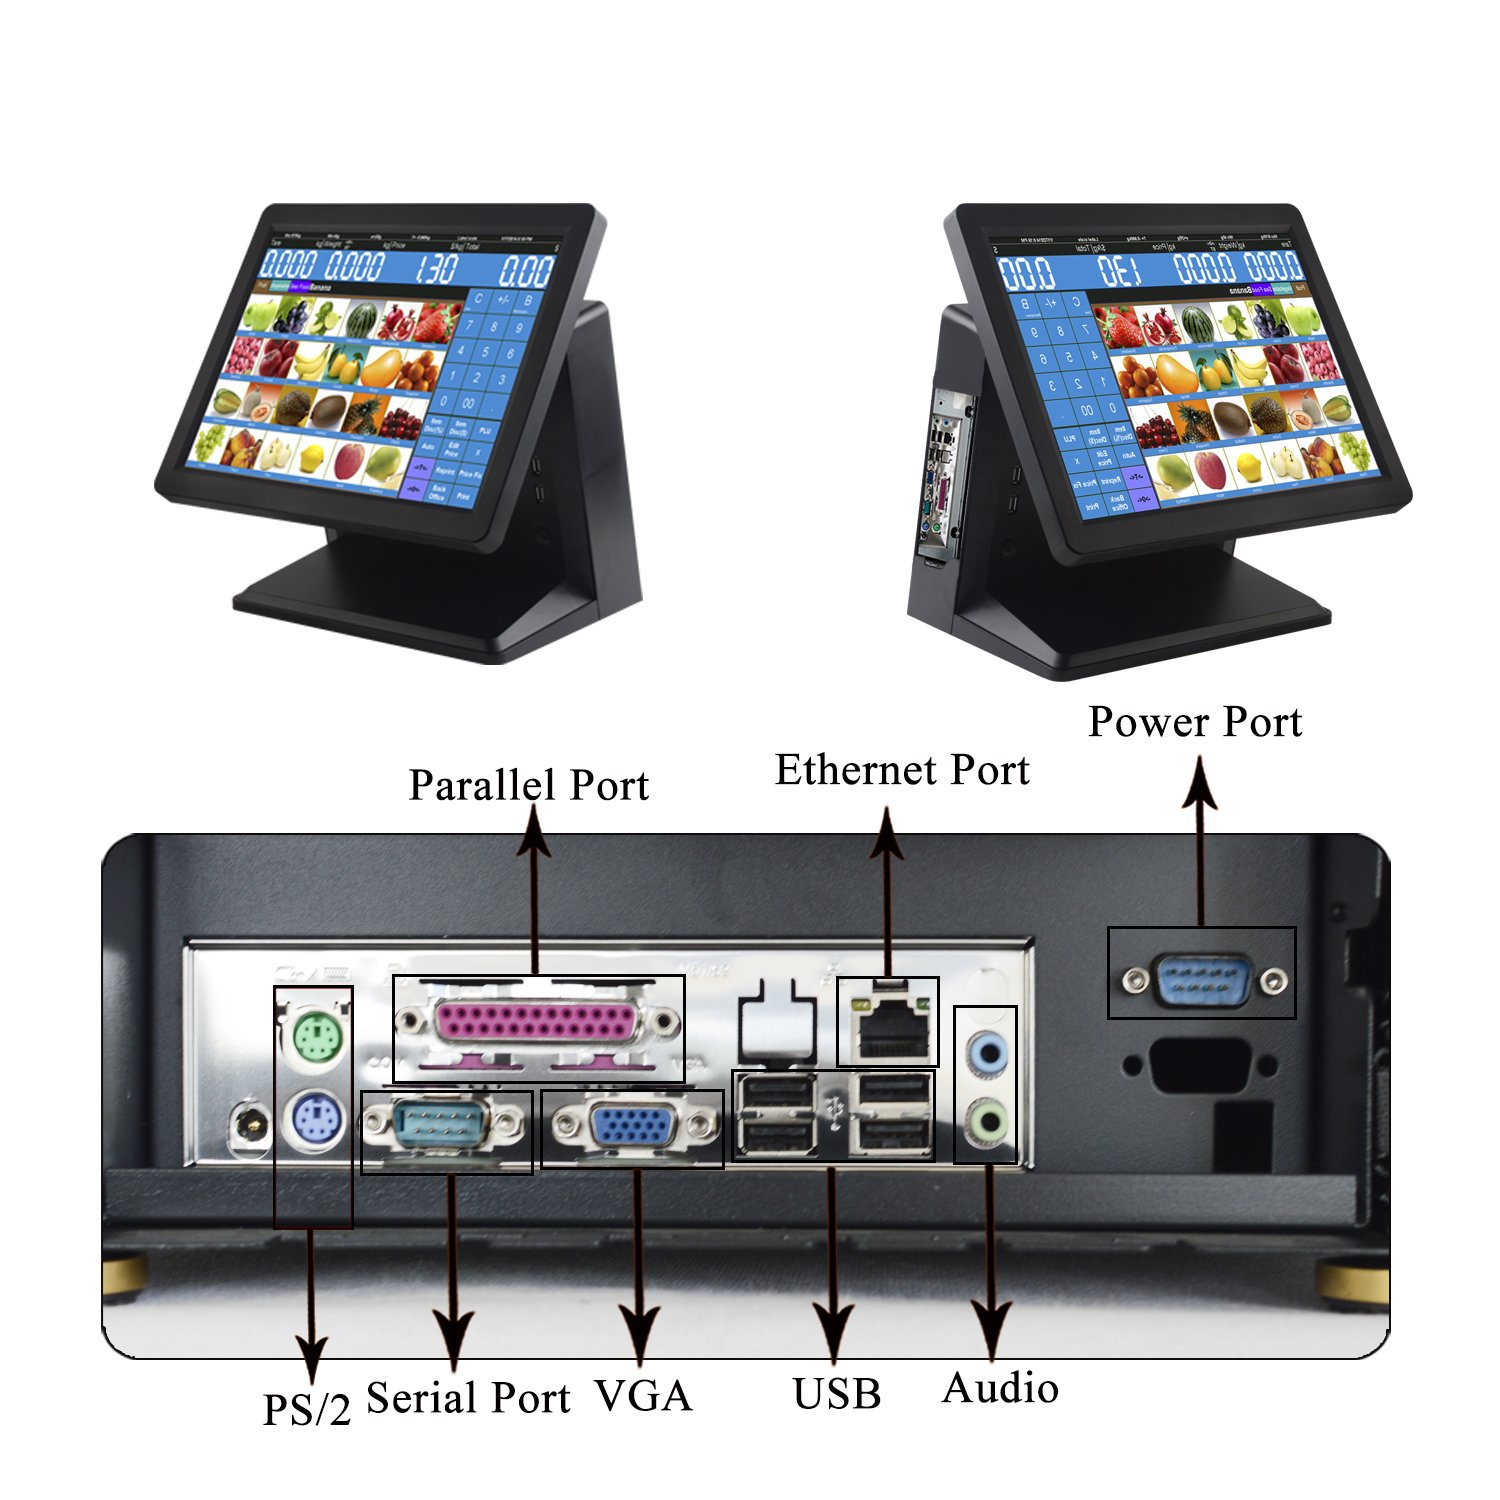 Amazon.com : ZHONGJI Pos Manufacturer Direct Selling Trade Assurance Pos System Computer Cash Registers 15 Inch Touch Screen for Shopping mall or Rsetaurant ...